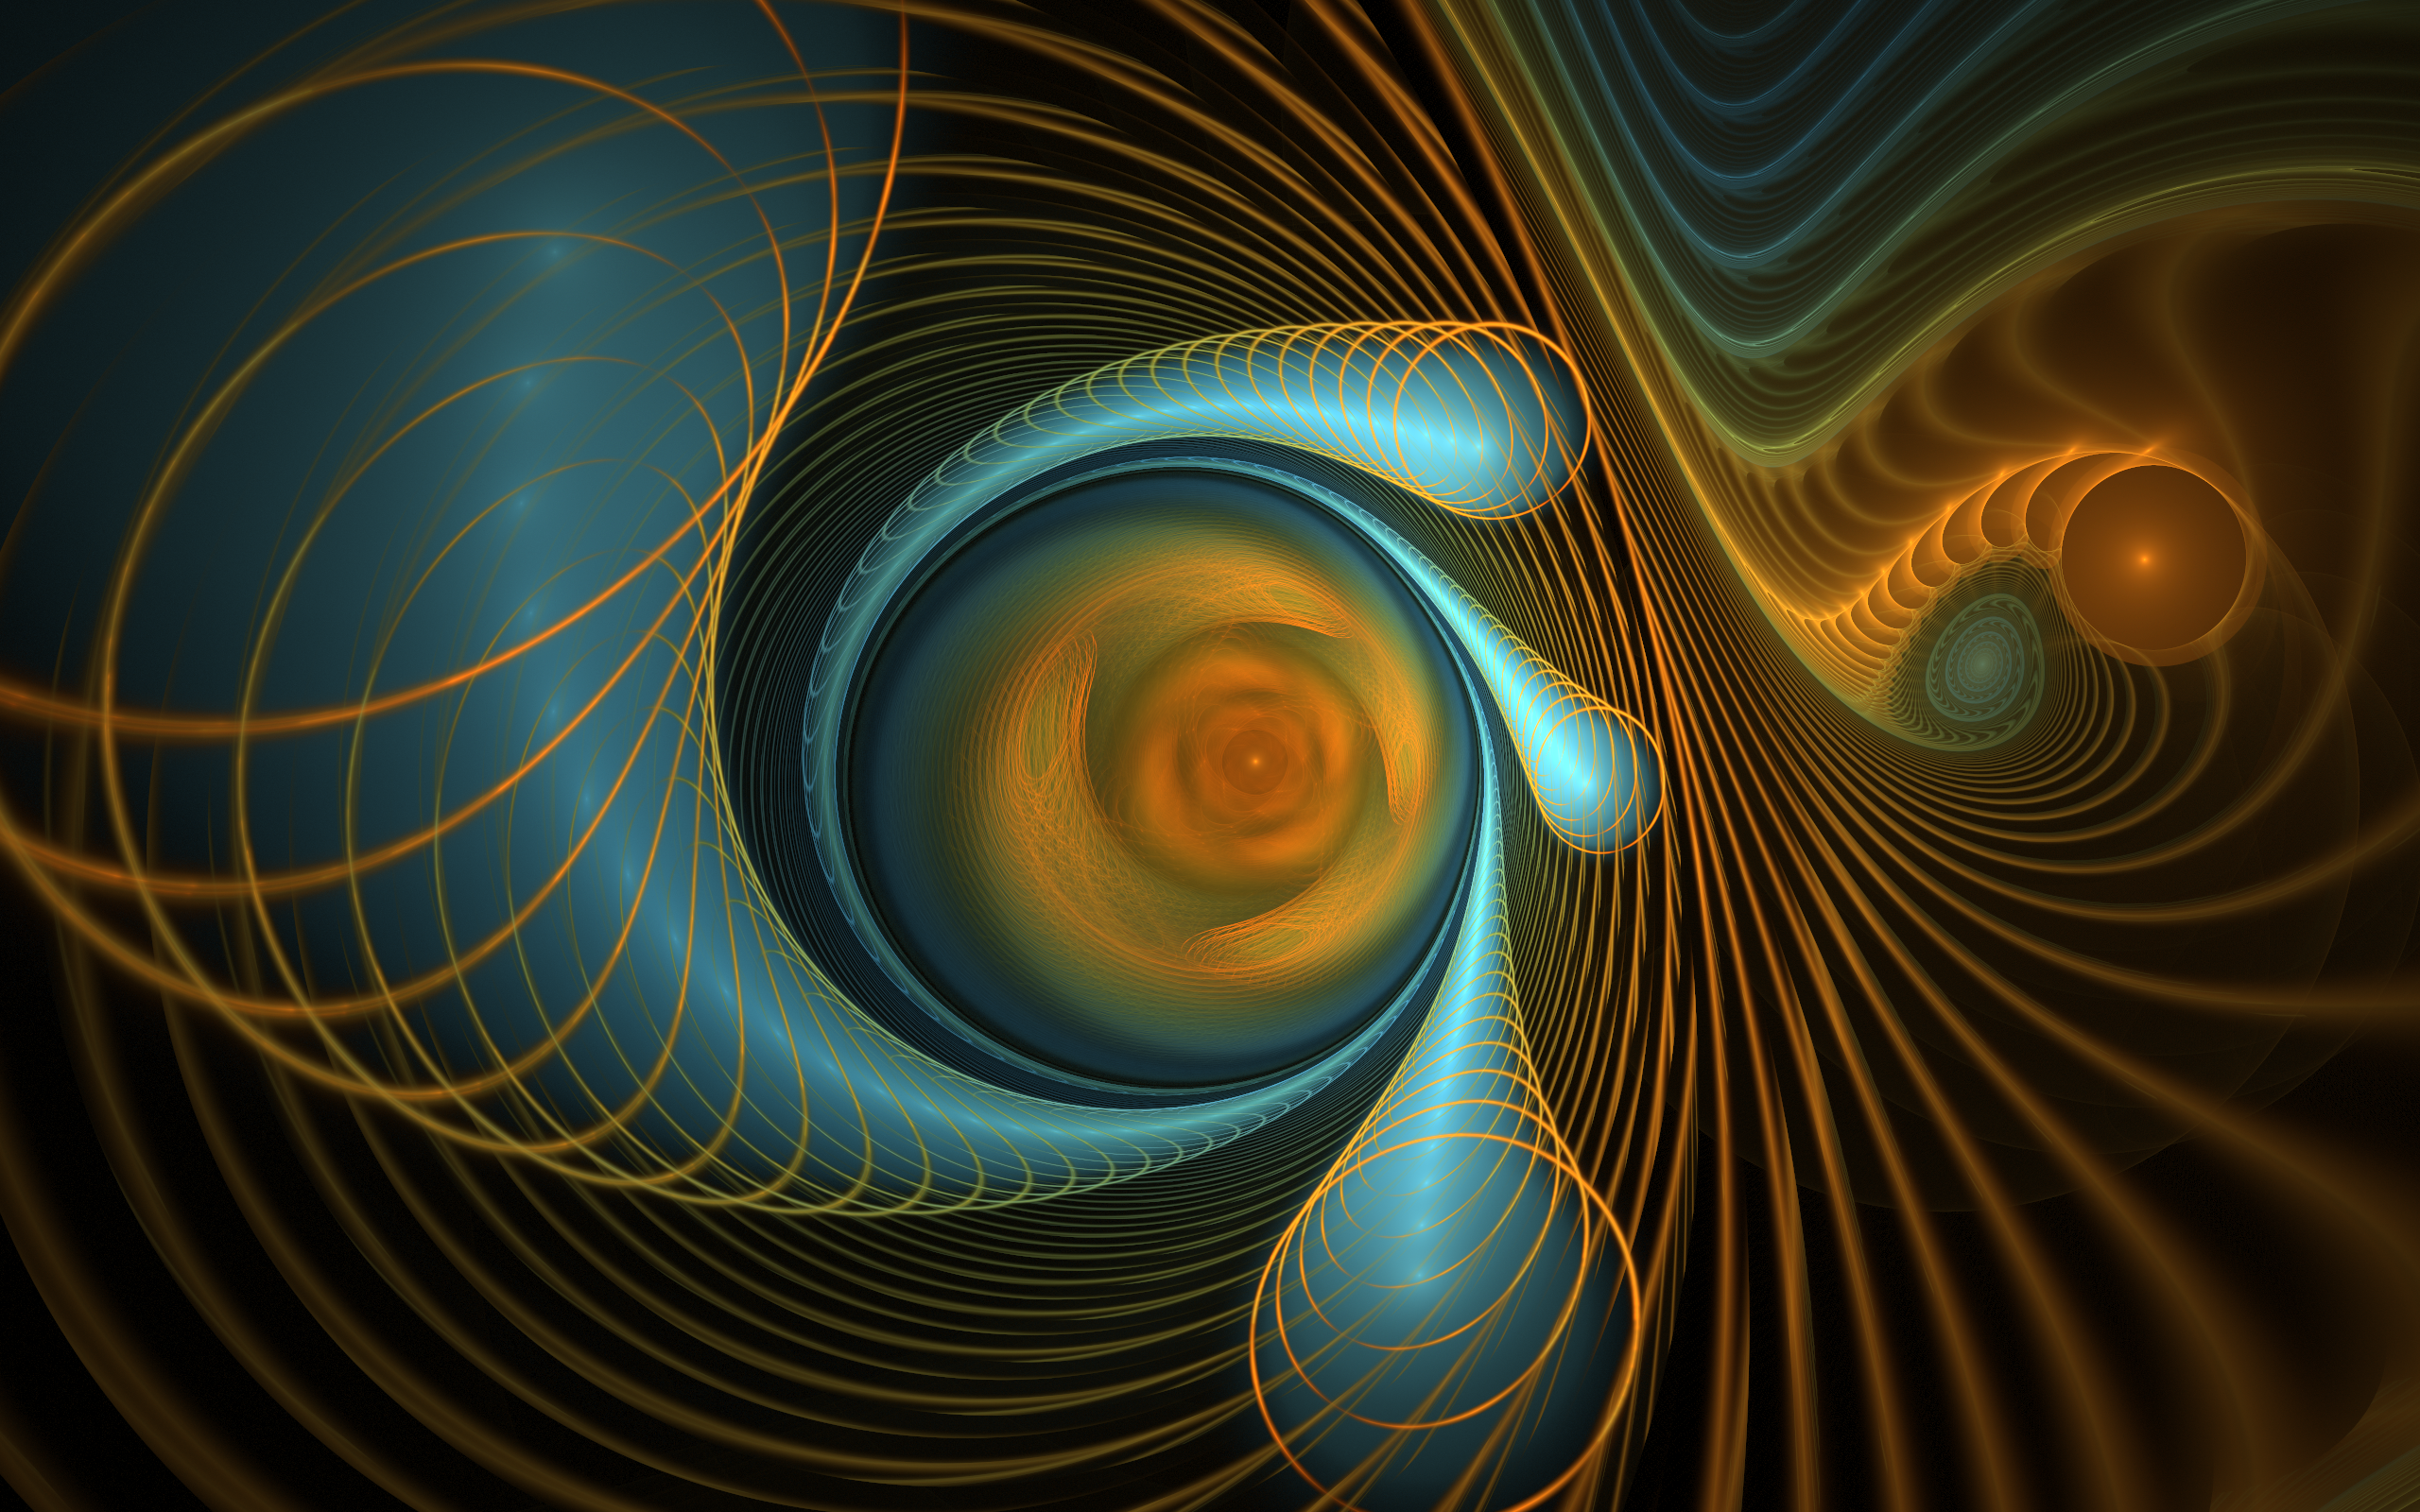 Fractal Wallpaper Android